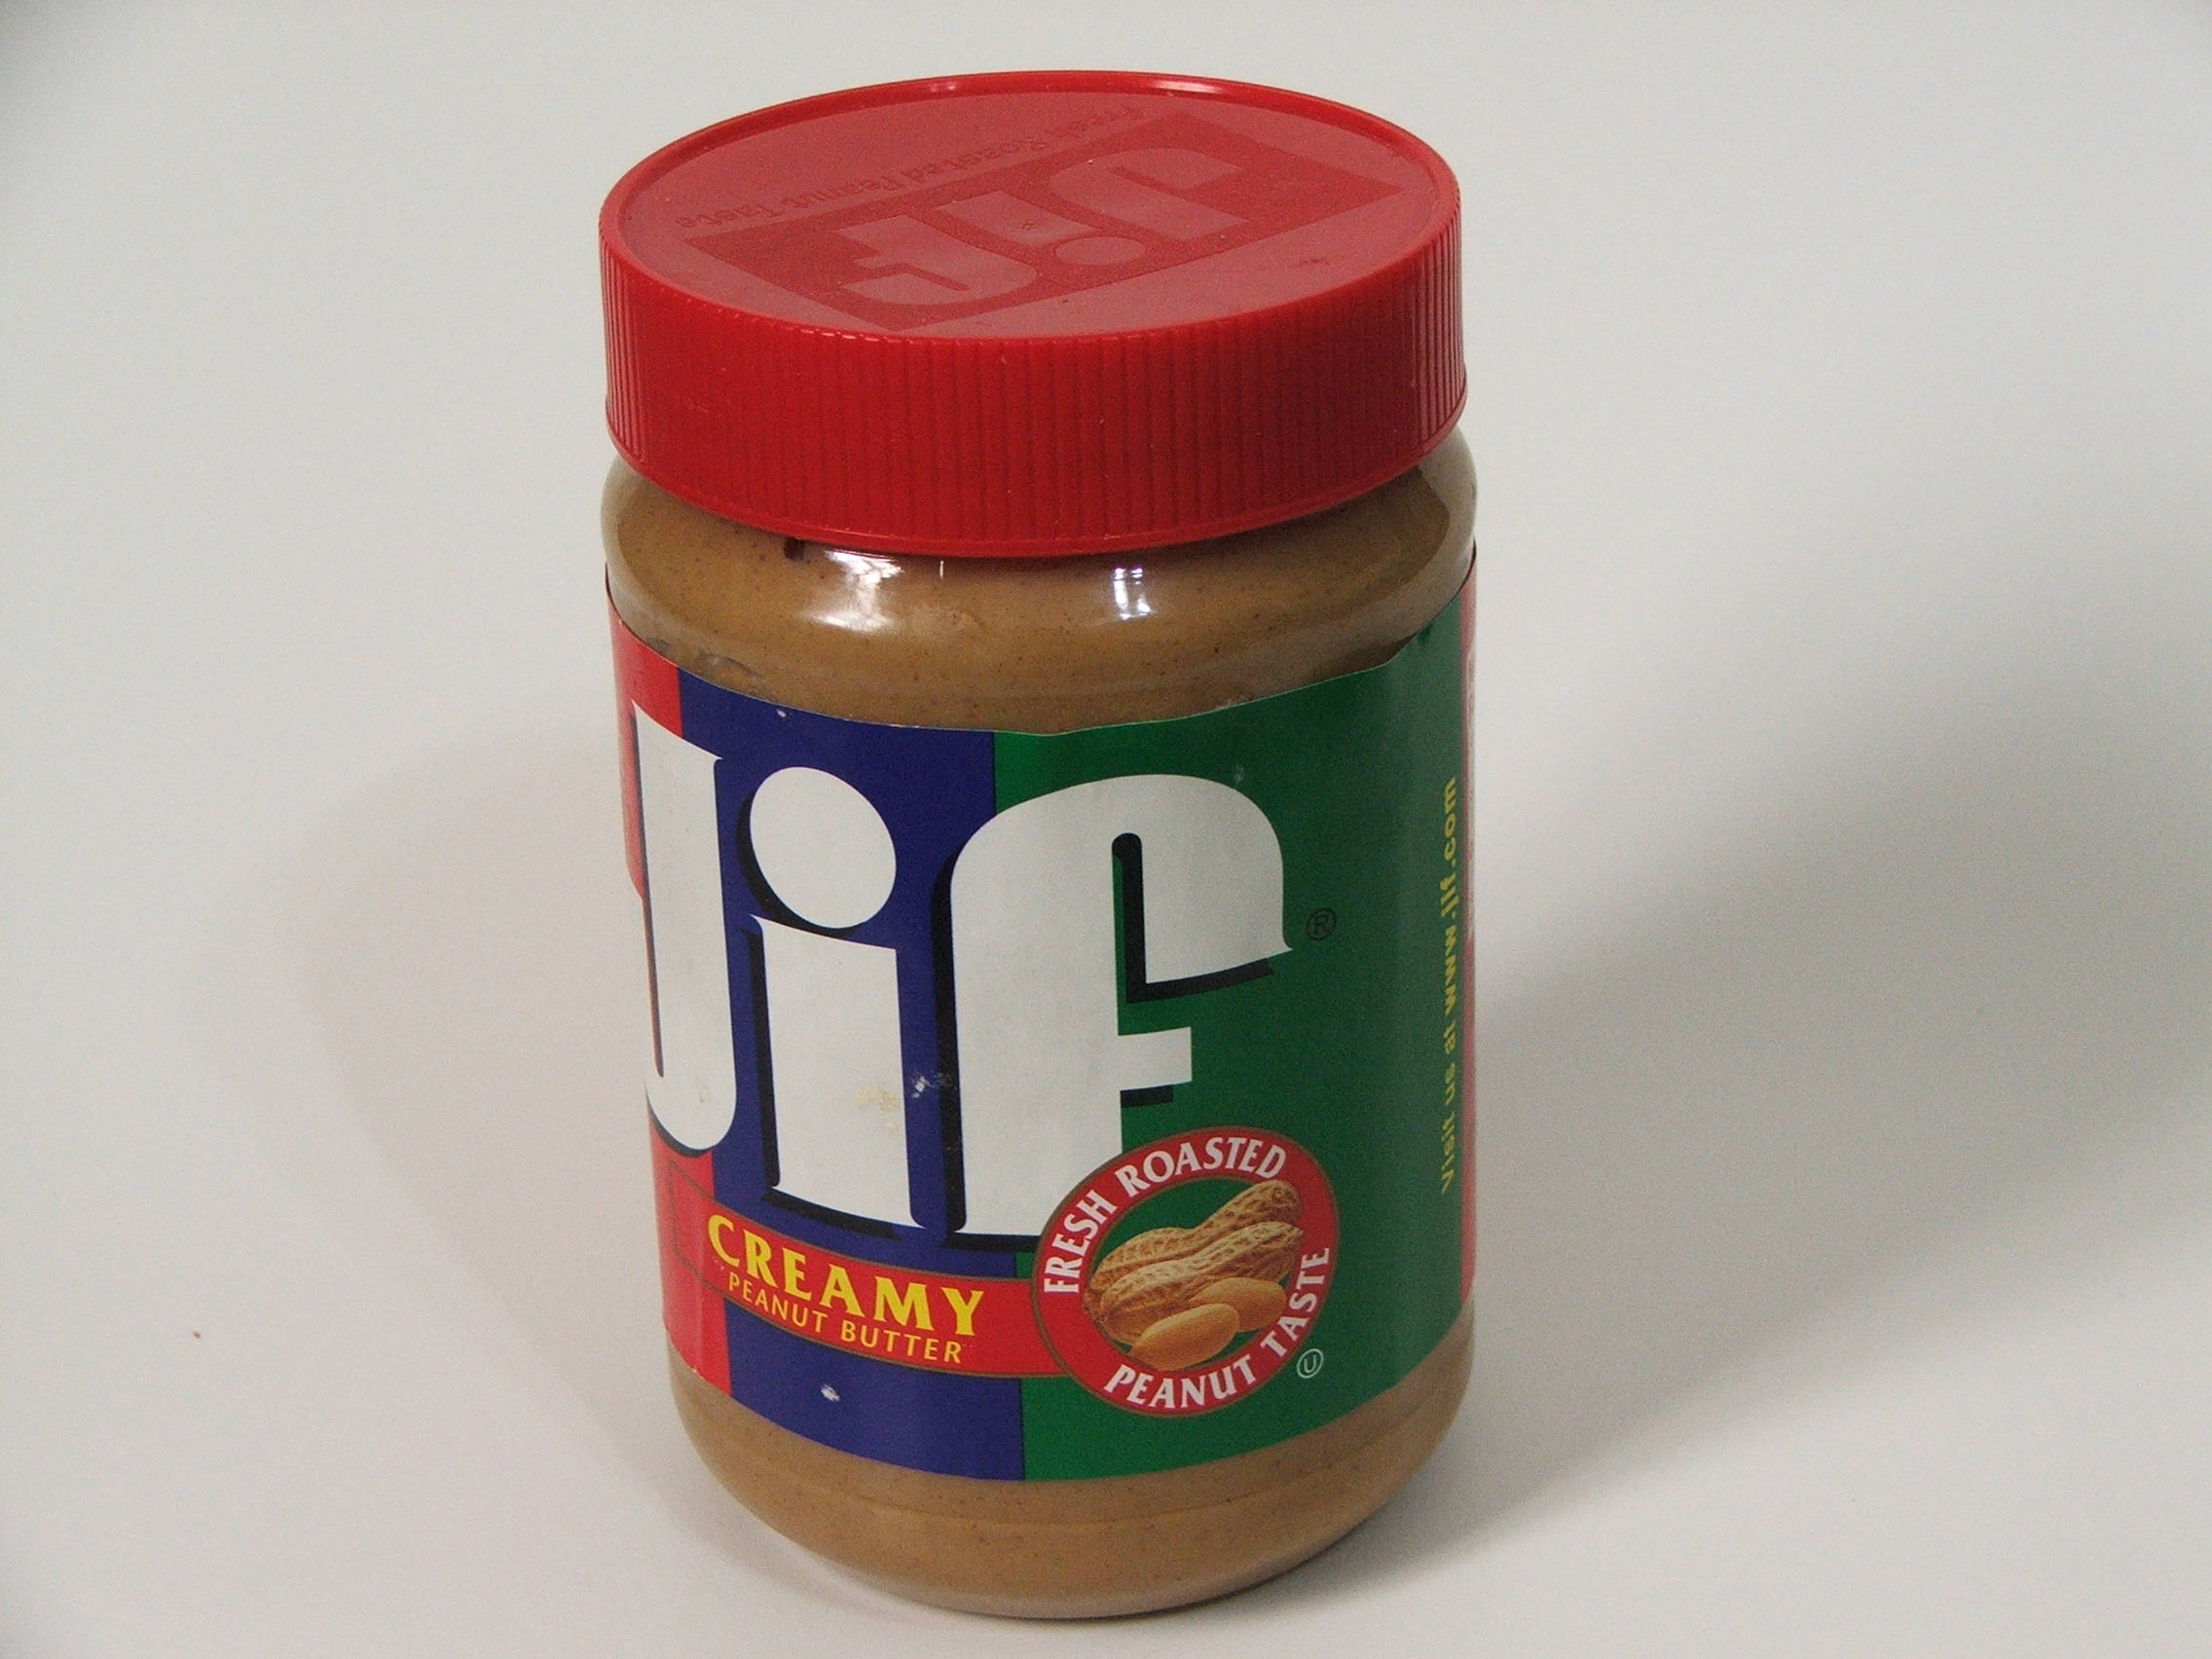 a can of Jif